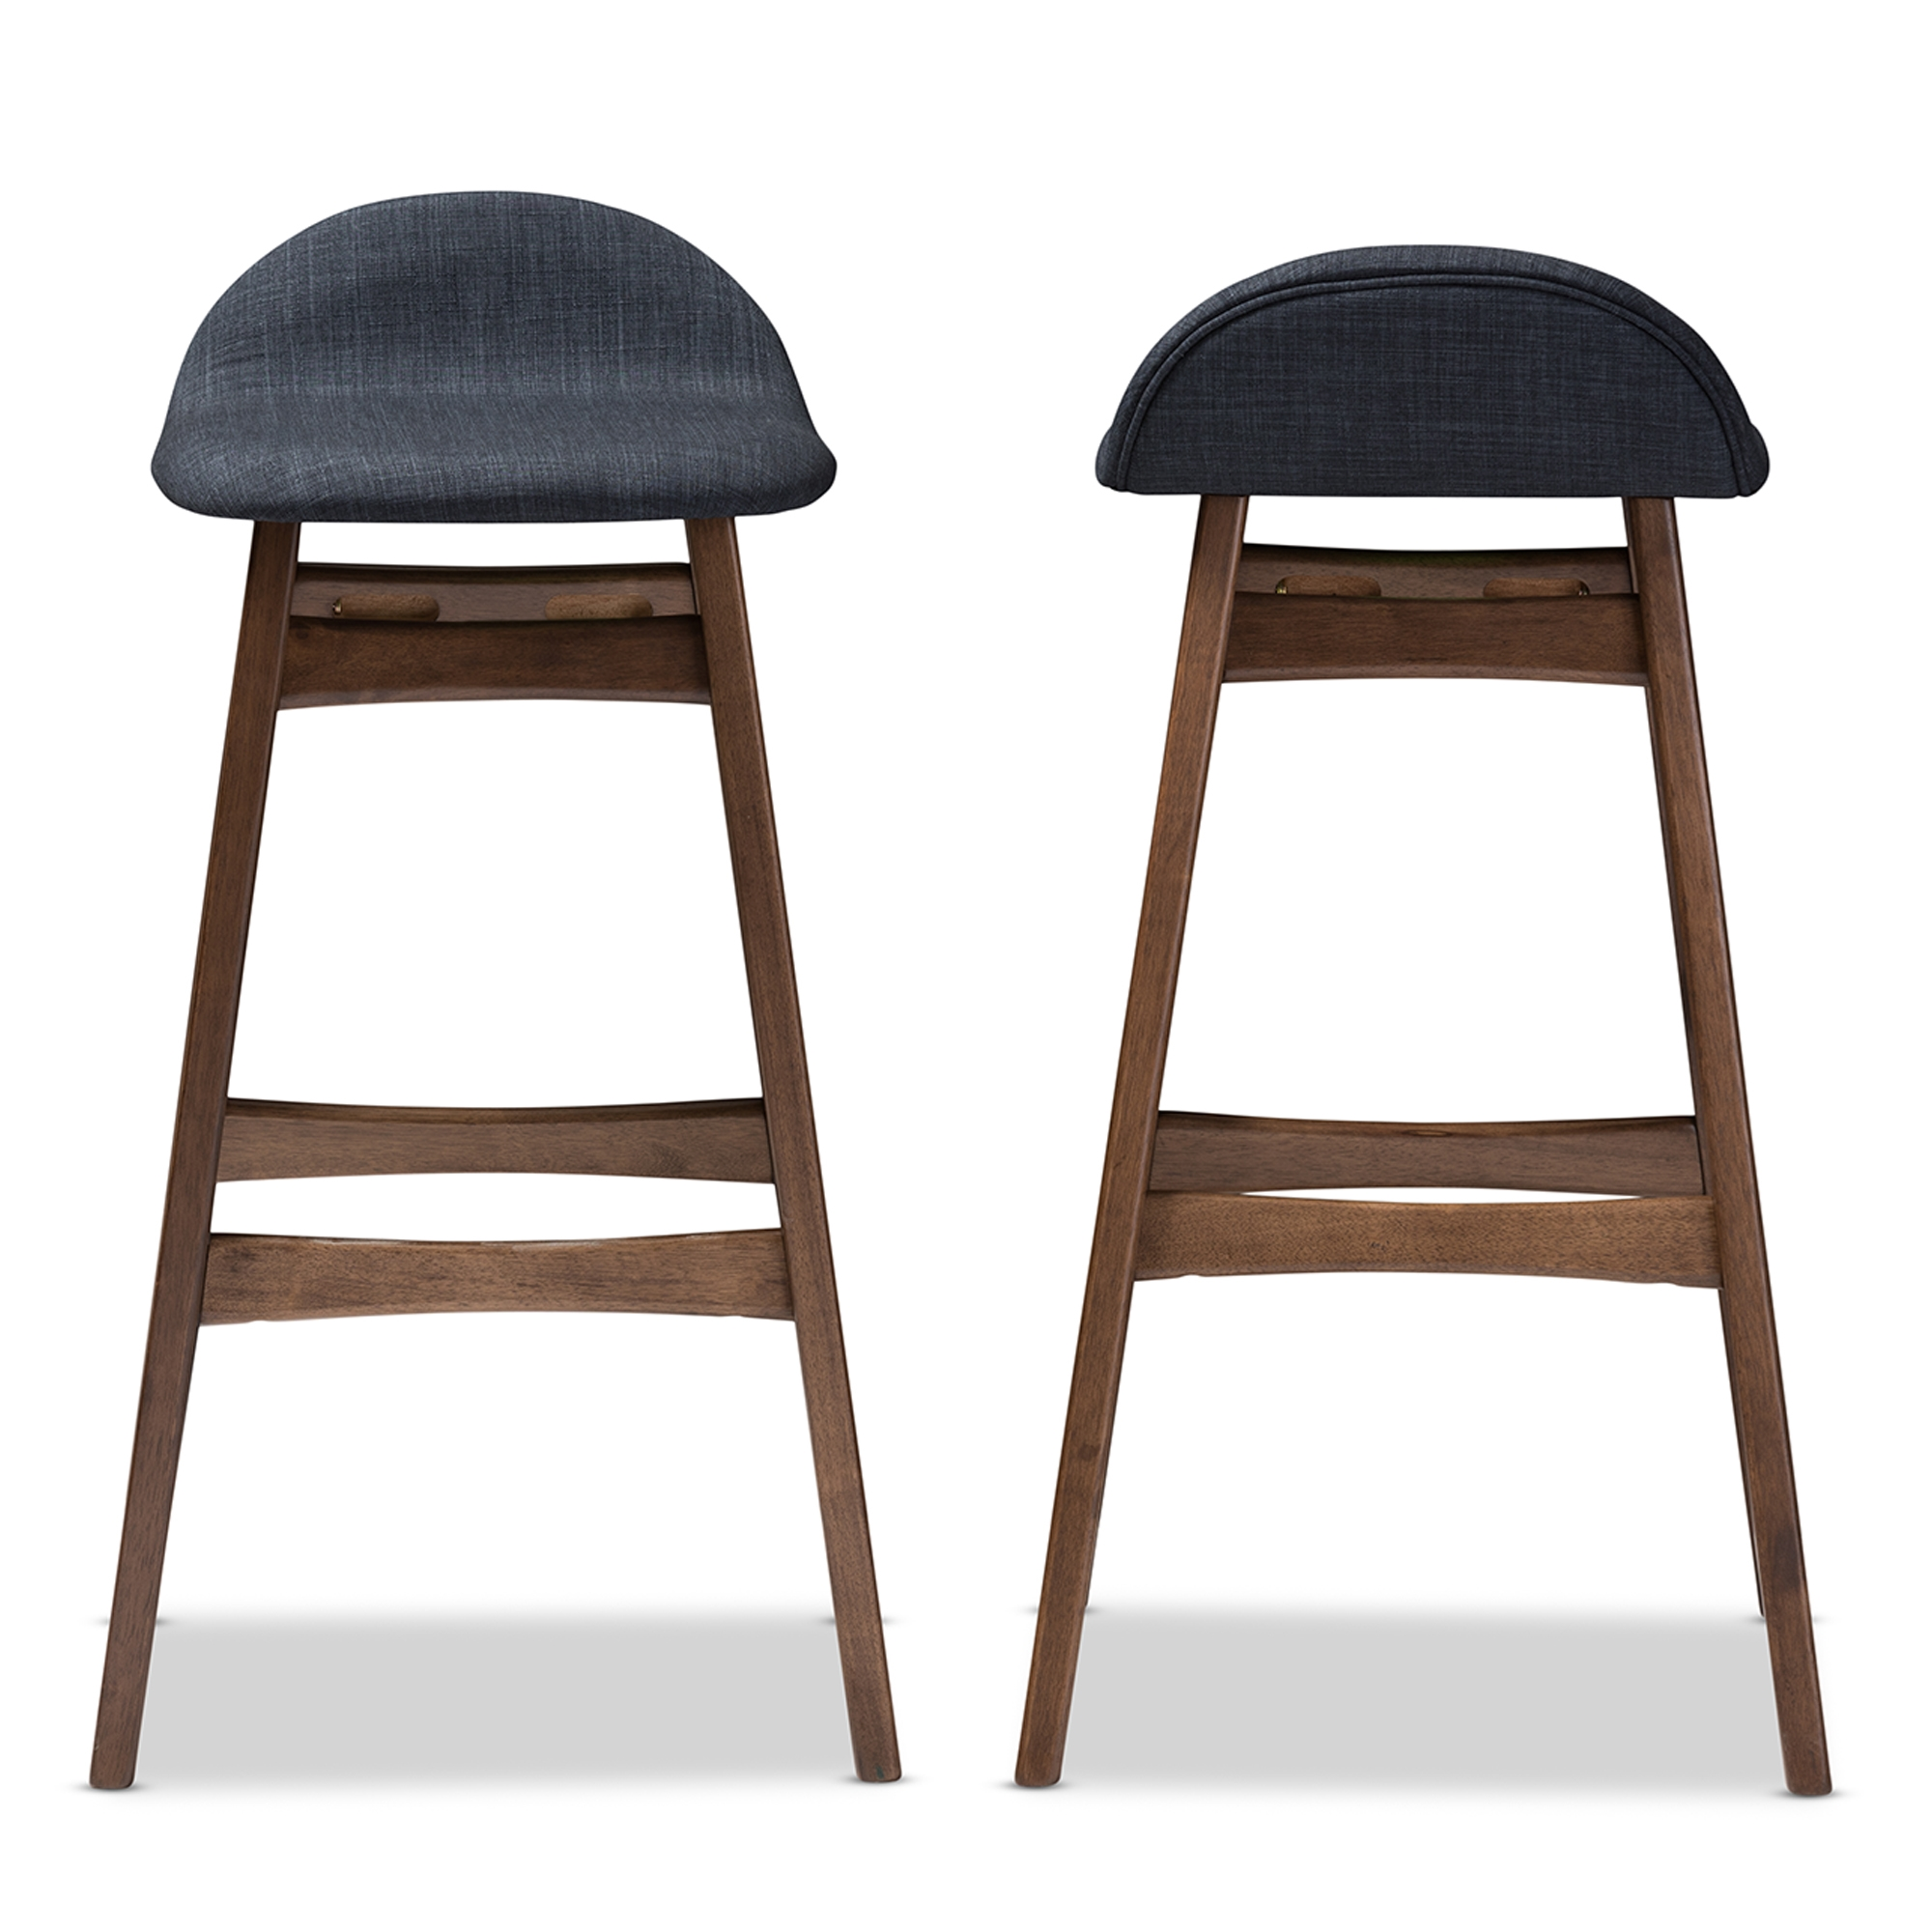 height counter leather backs blue chairs vintage back bench country swivel ribbon black top chair metal walmart stool french stools most western ikea with red turquoise high bar industrial